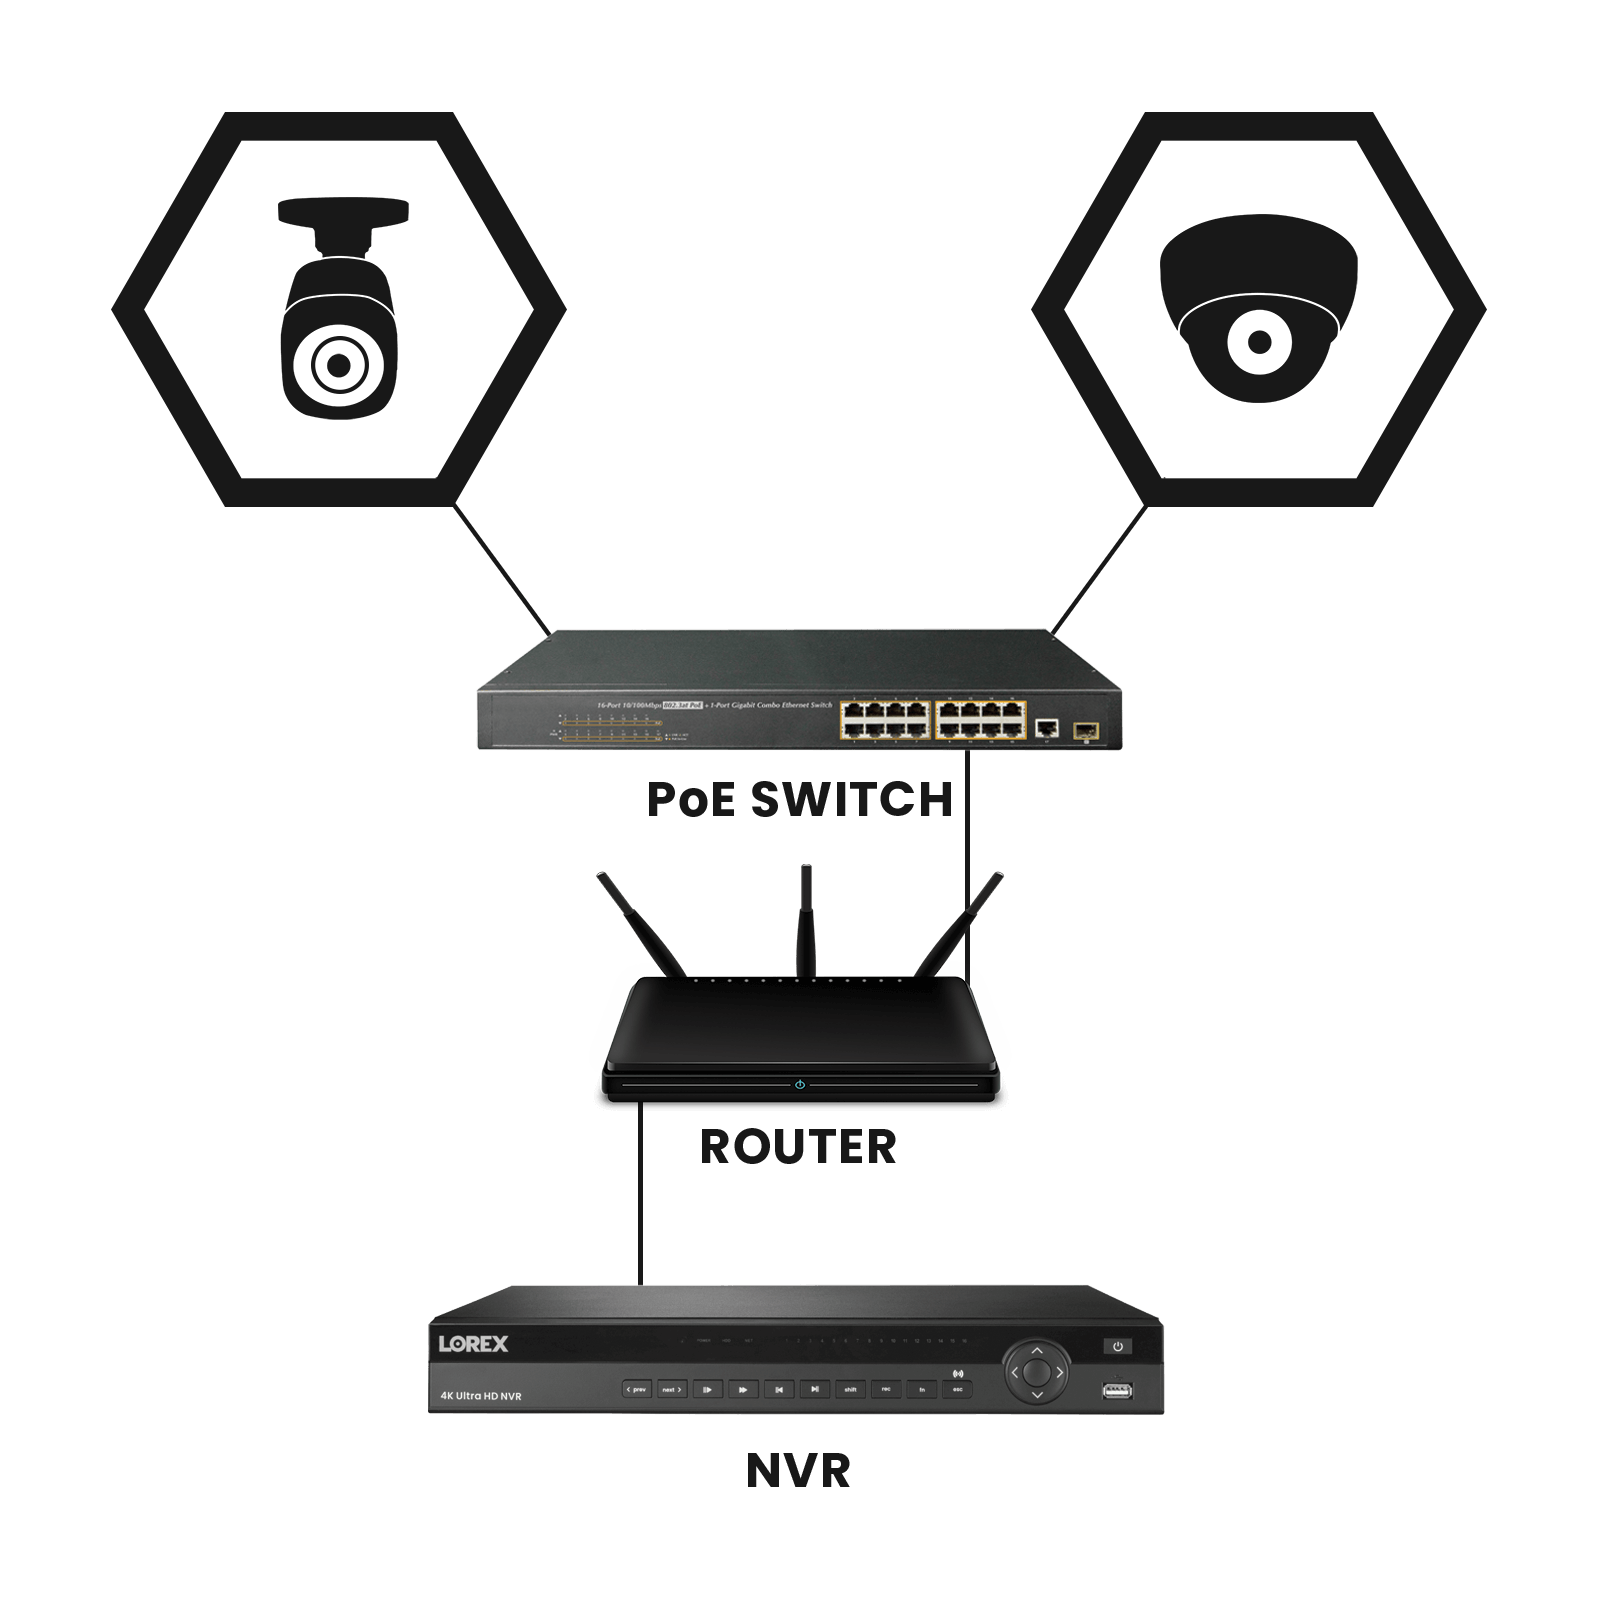 32-channel NVR - add 32 cameras to one security system